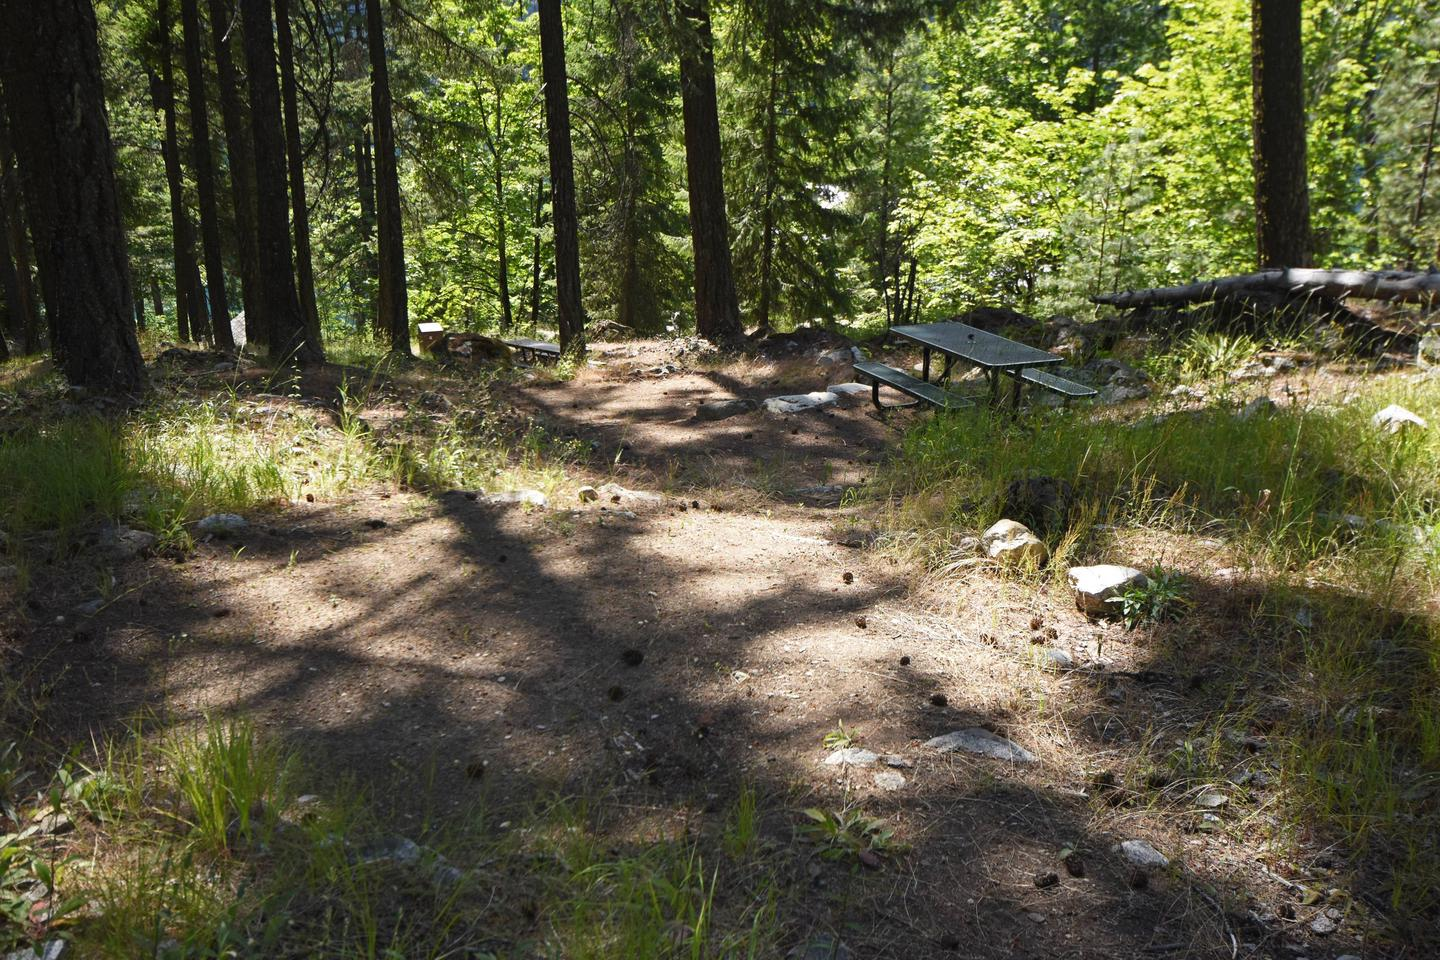 Lakeview campsite 8 with picnic table in ponderosa forestLakeview Site 8